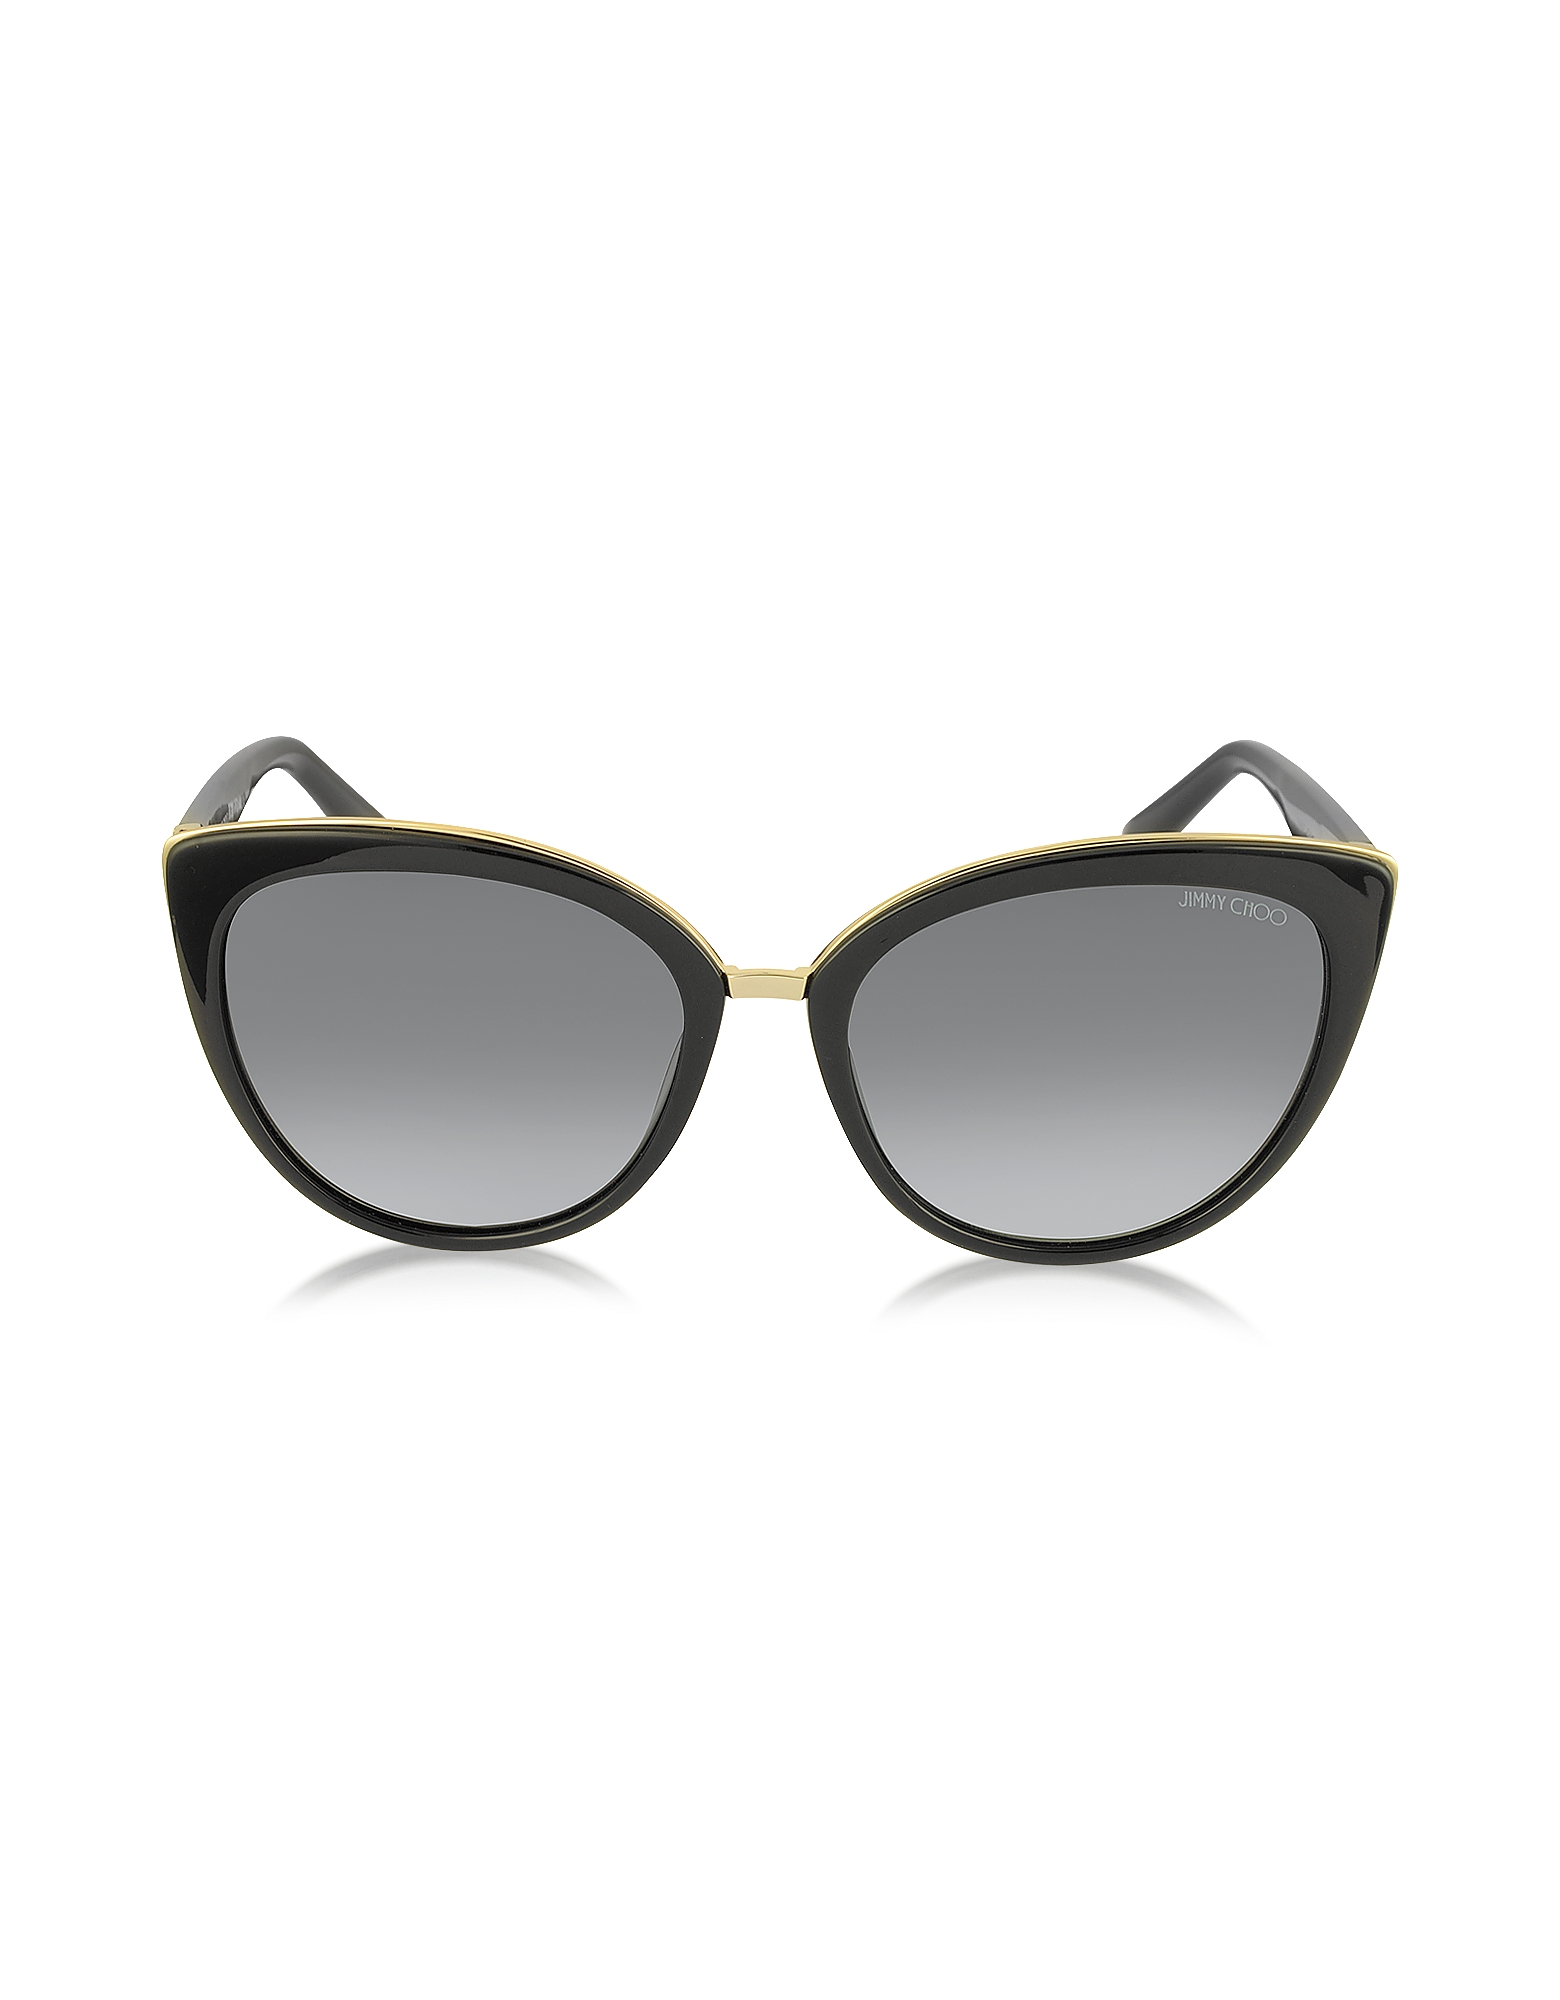 Jimmy Choo Designer Sunglasses, DANA/S Acetate Cat Eye Sunglasses